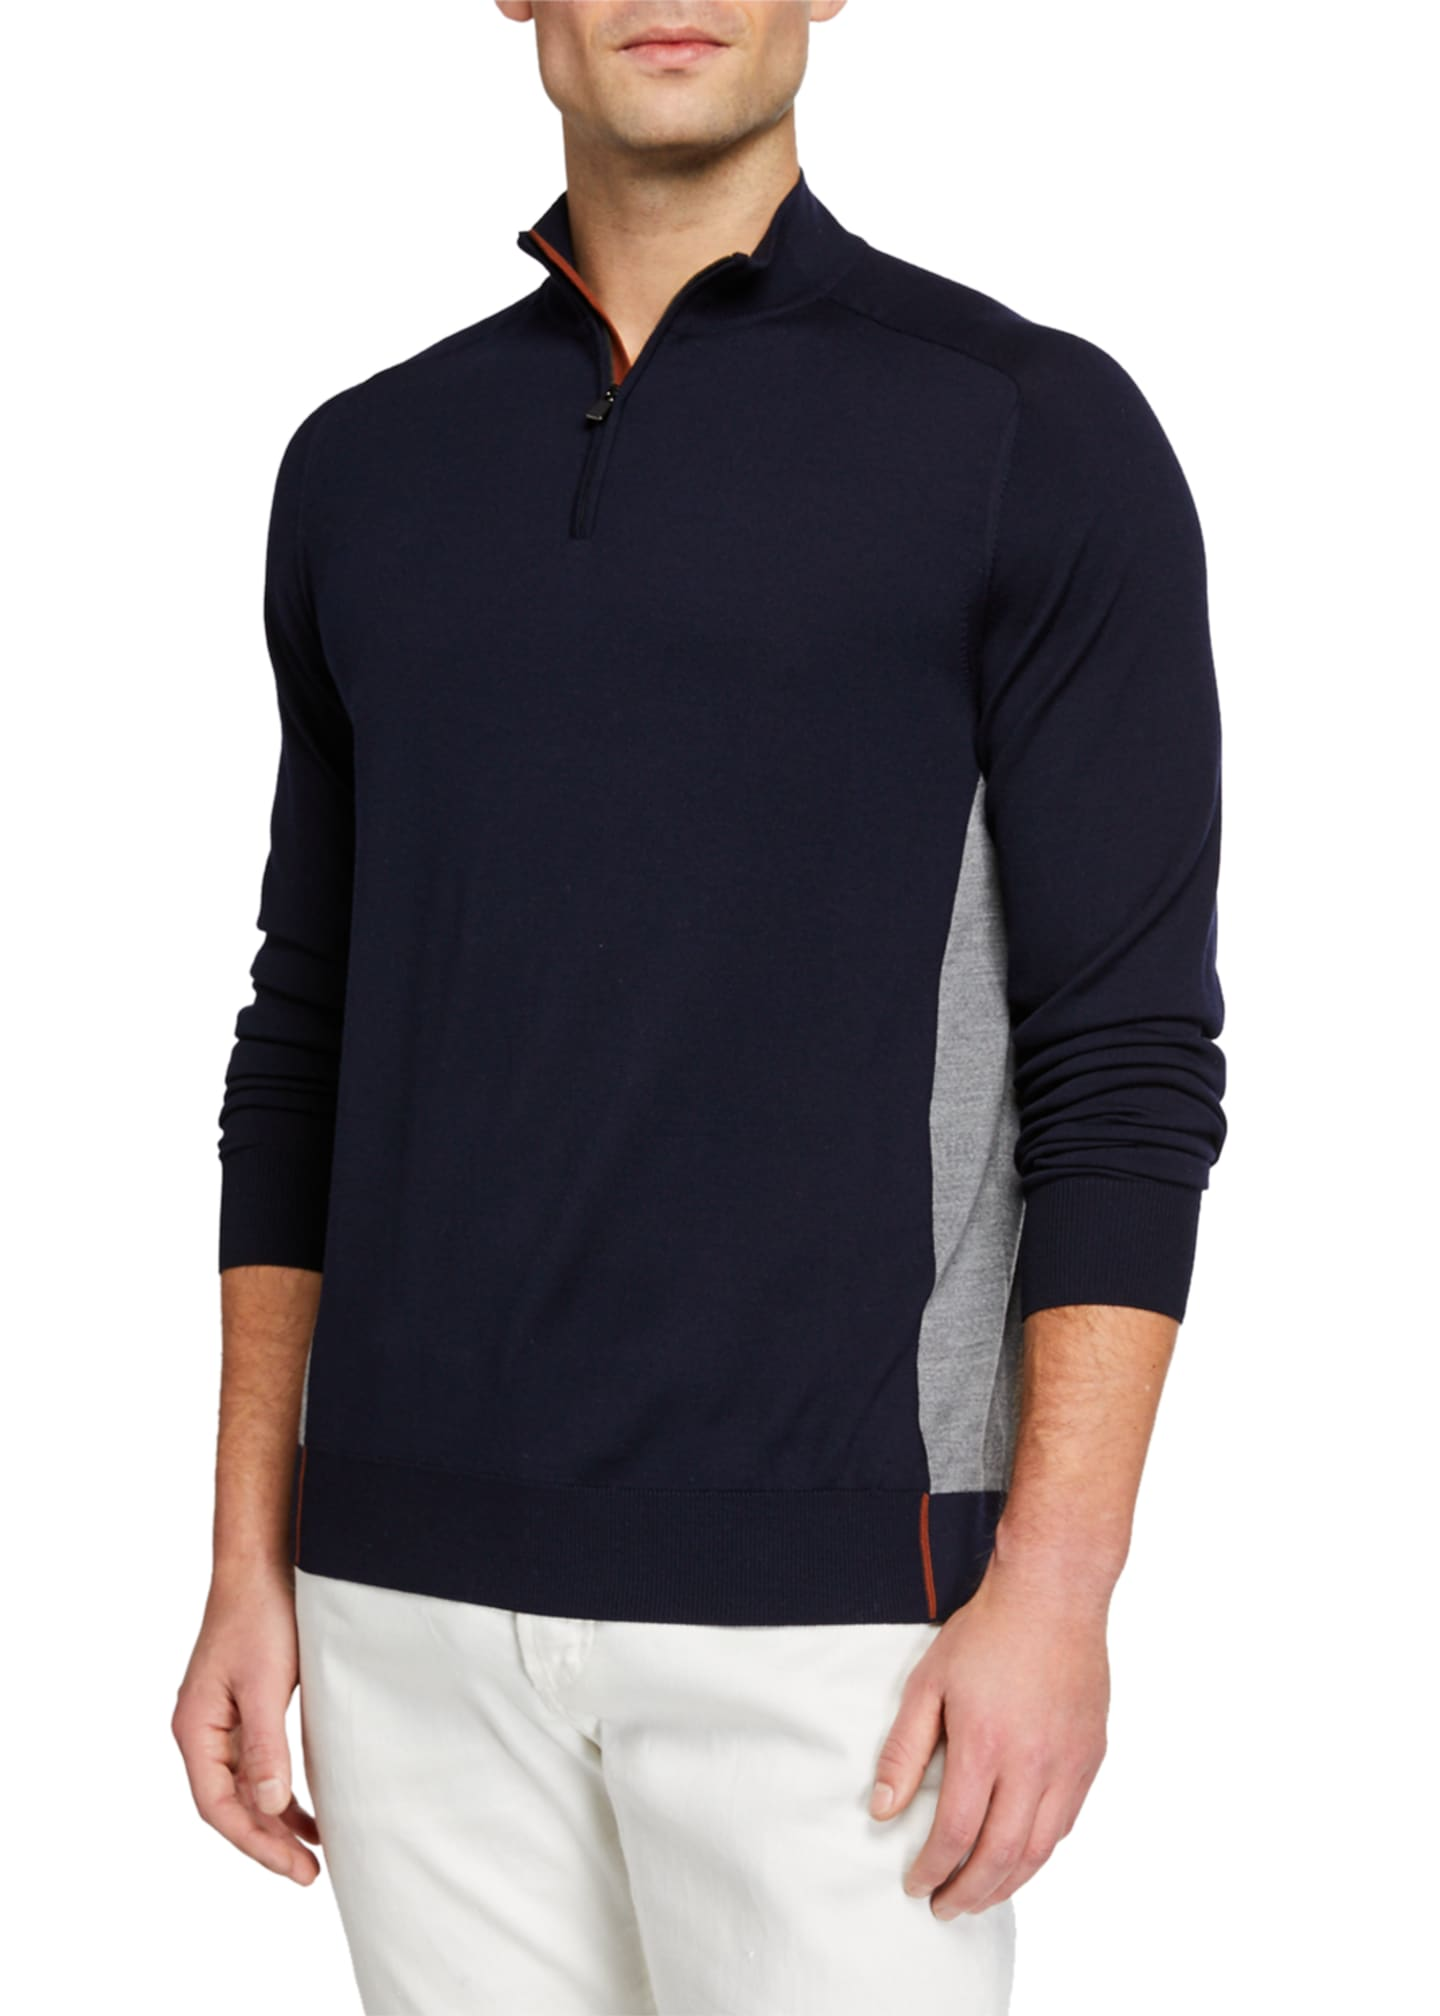 Loro Piana Men's Matches Athletic-Inspired Sweater